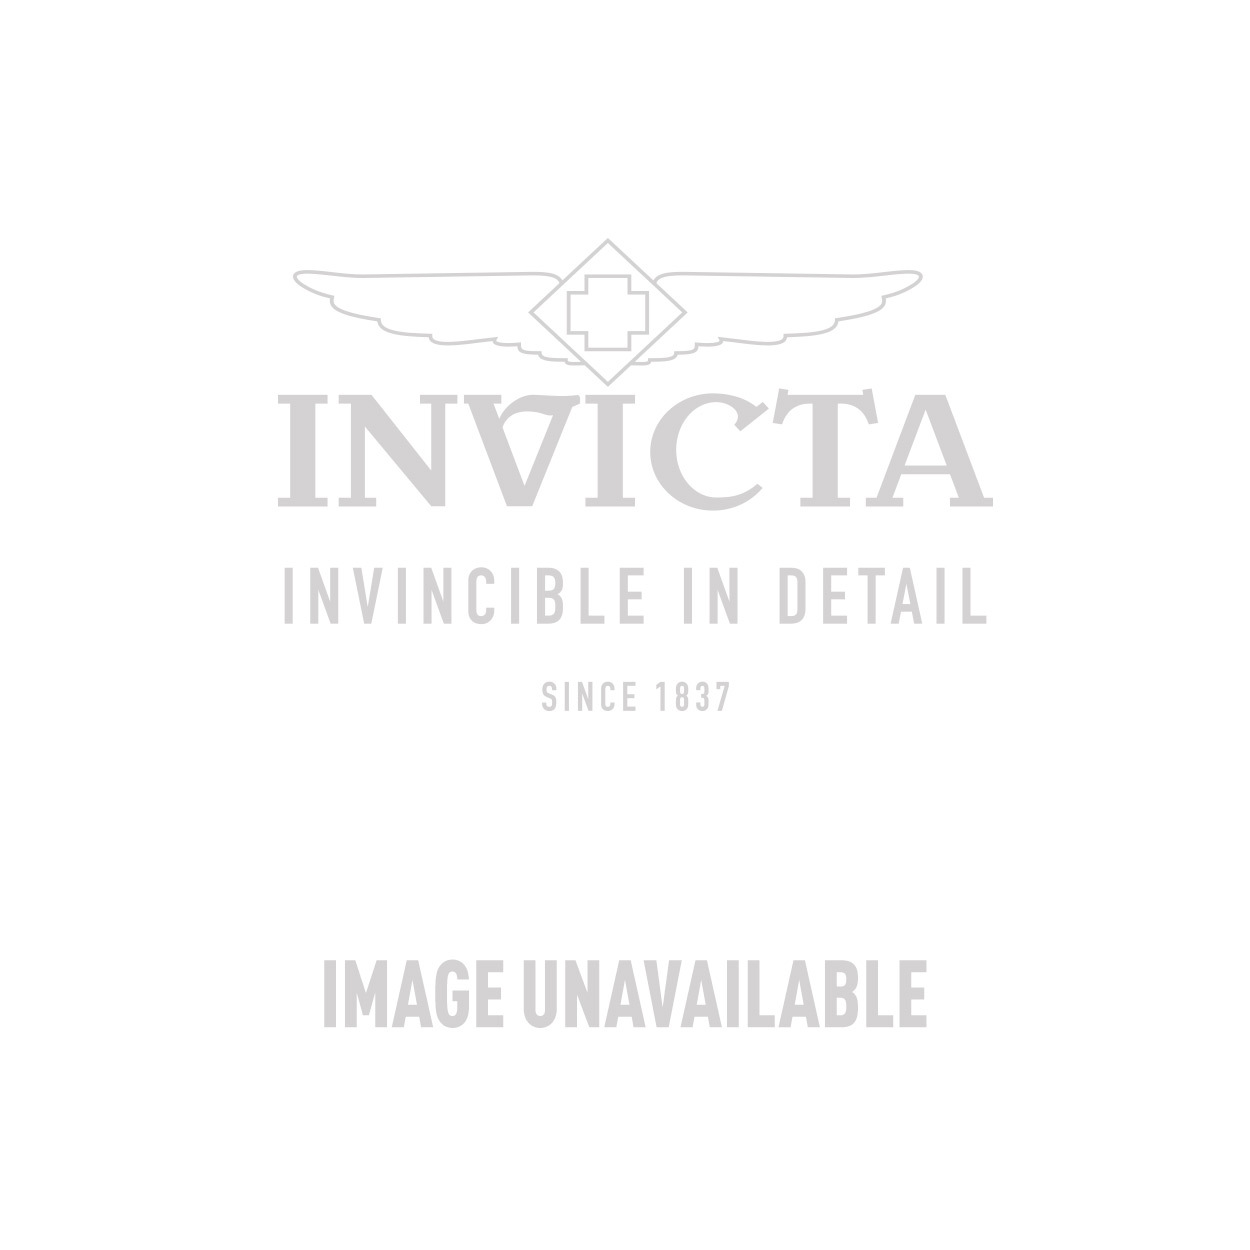 Invicta Aviator Swiss Movement Quartz Watch - Brown, Stainless Steel case with Black tone Polyurethane band - Model 15892